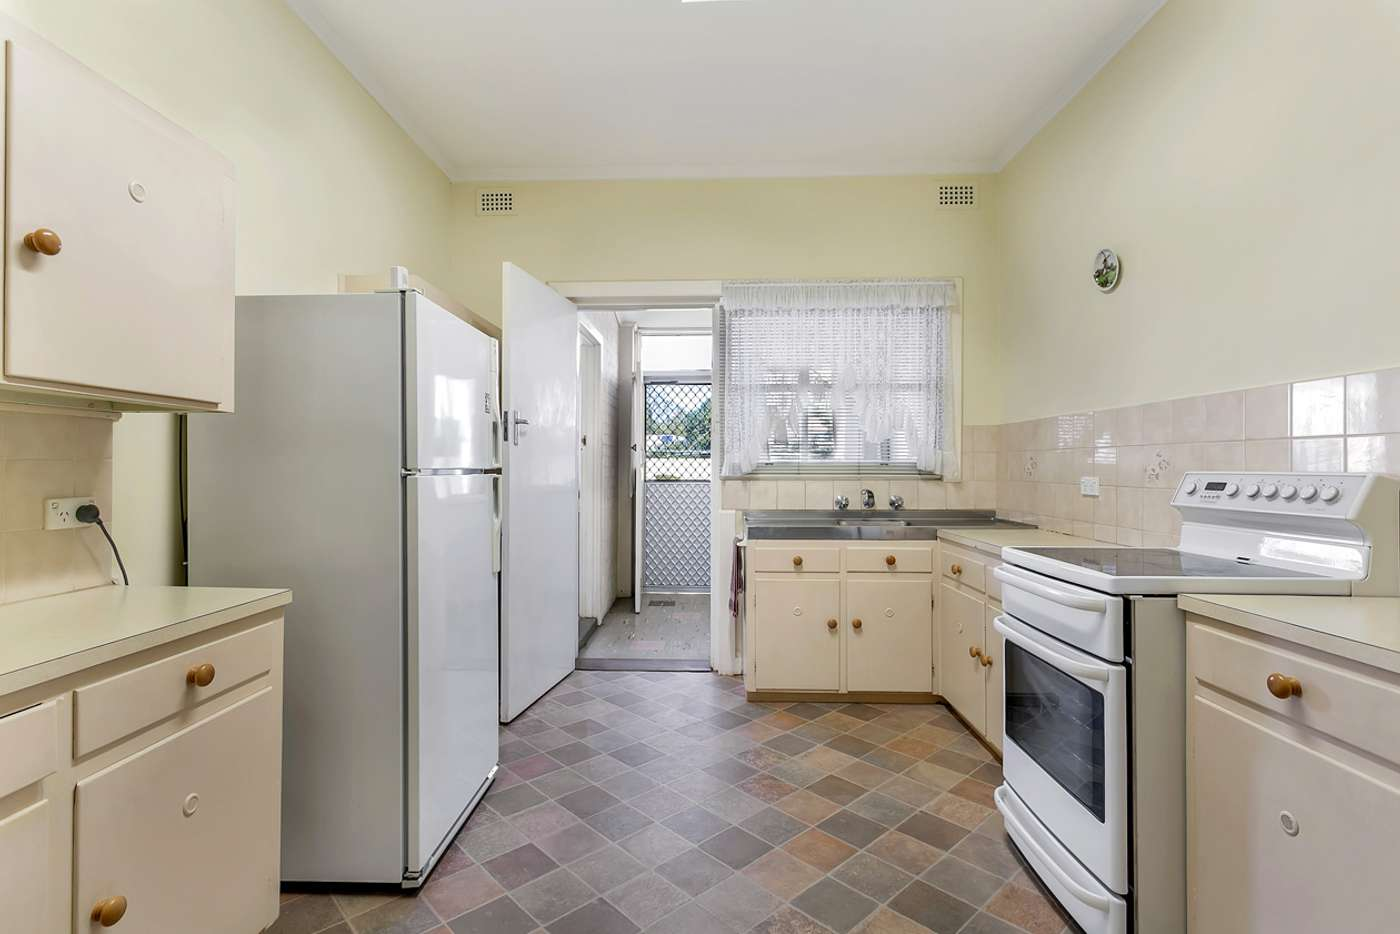 Sixth view of Homely house listing, 18 Monmouth Road, Westbourne Park SA 5041